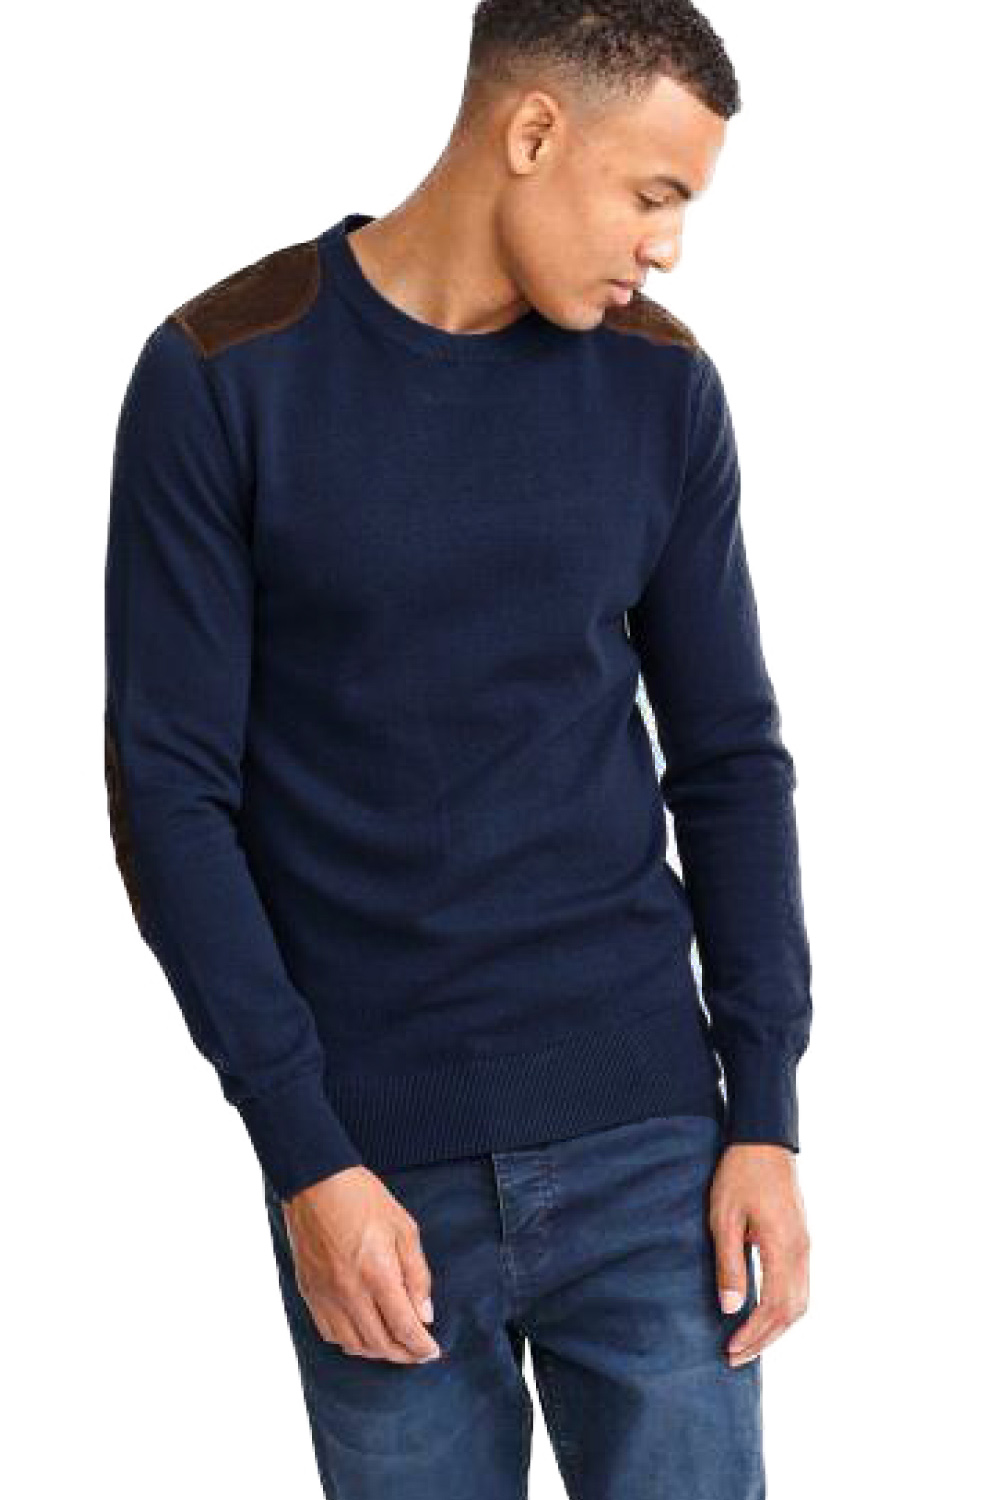 Brave-Soul-Mens-Dalif-Crew-Neck-Jumper-Cotton-Knitted-Corduroy-Detailed-Sweater thumbnail 3